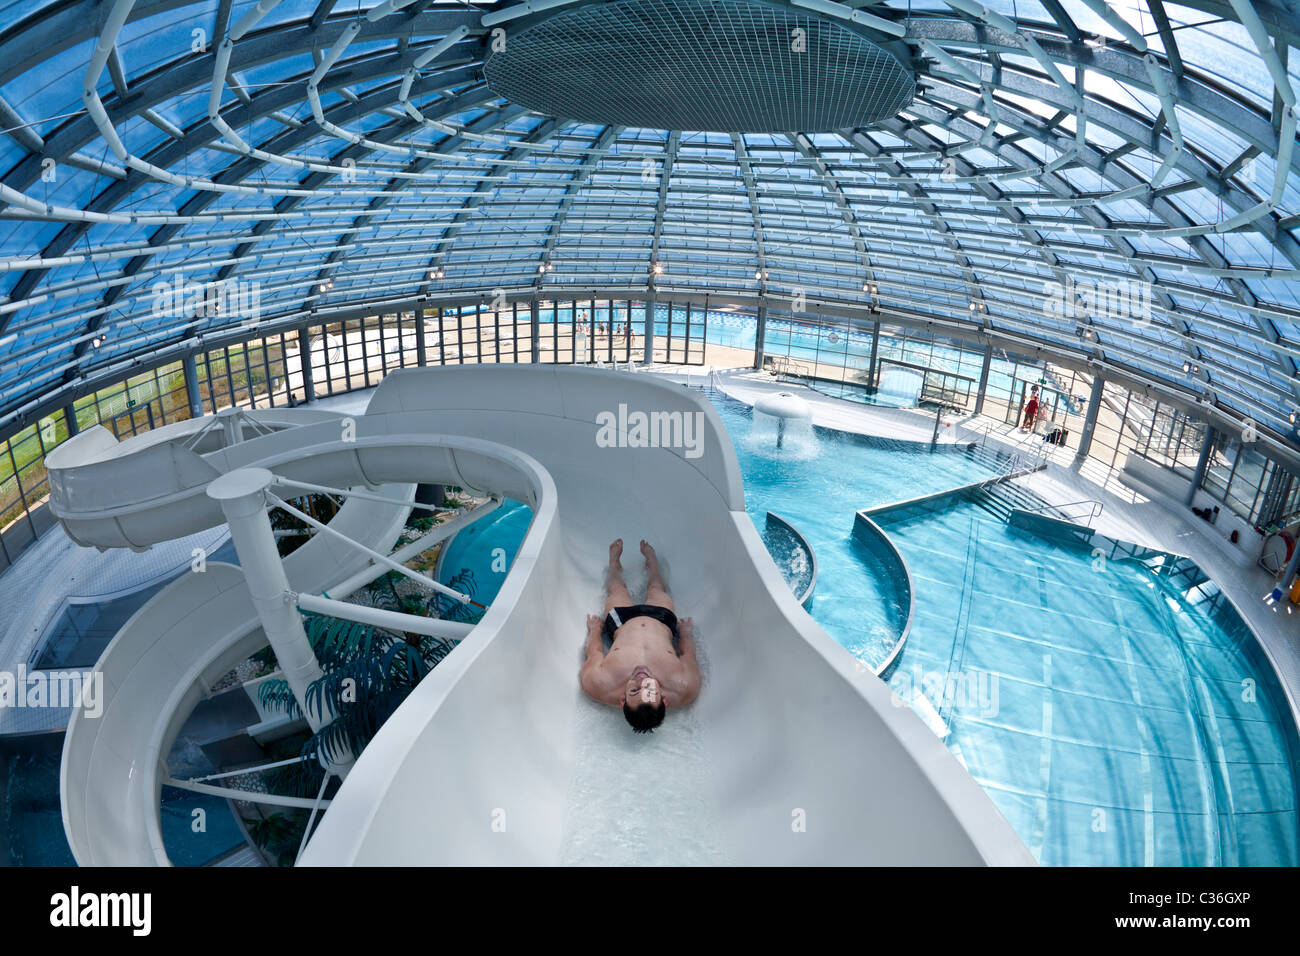 The vichy val d 39 allier swimming pool waterslide france - Playmobil swimming pool with waterslide ...